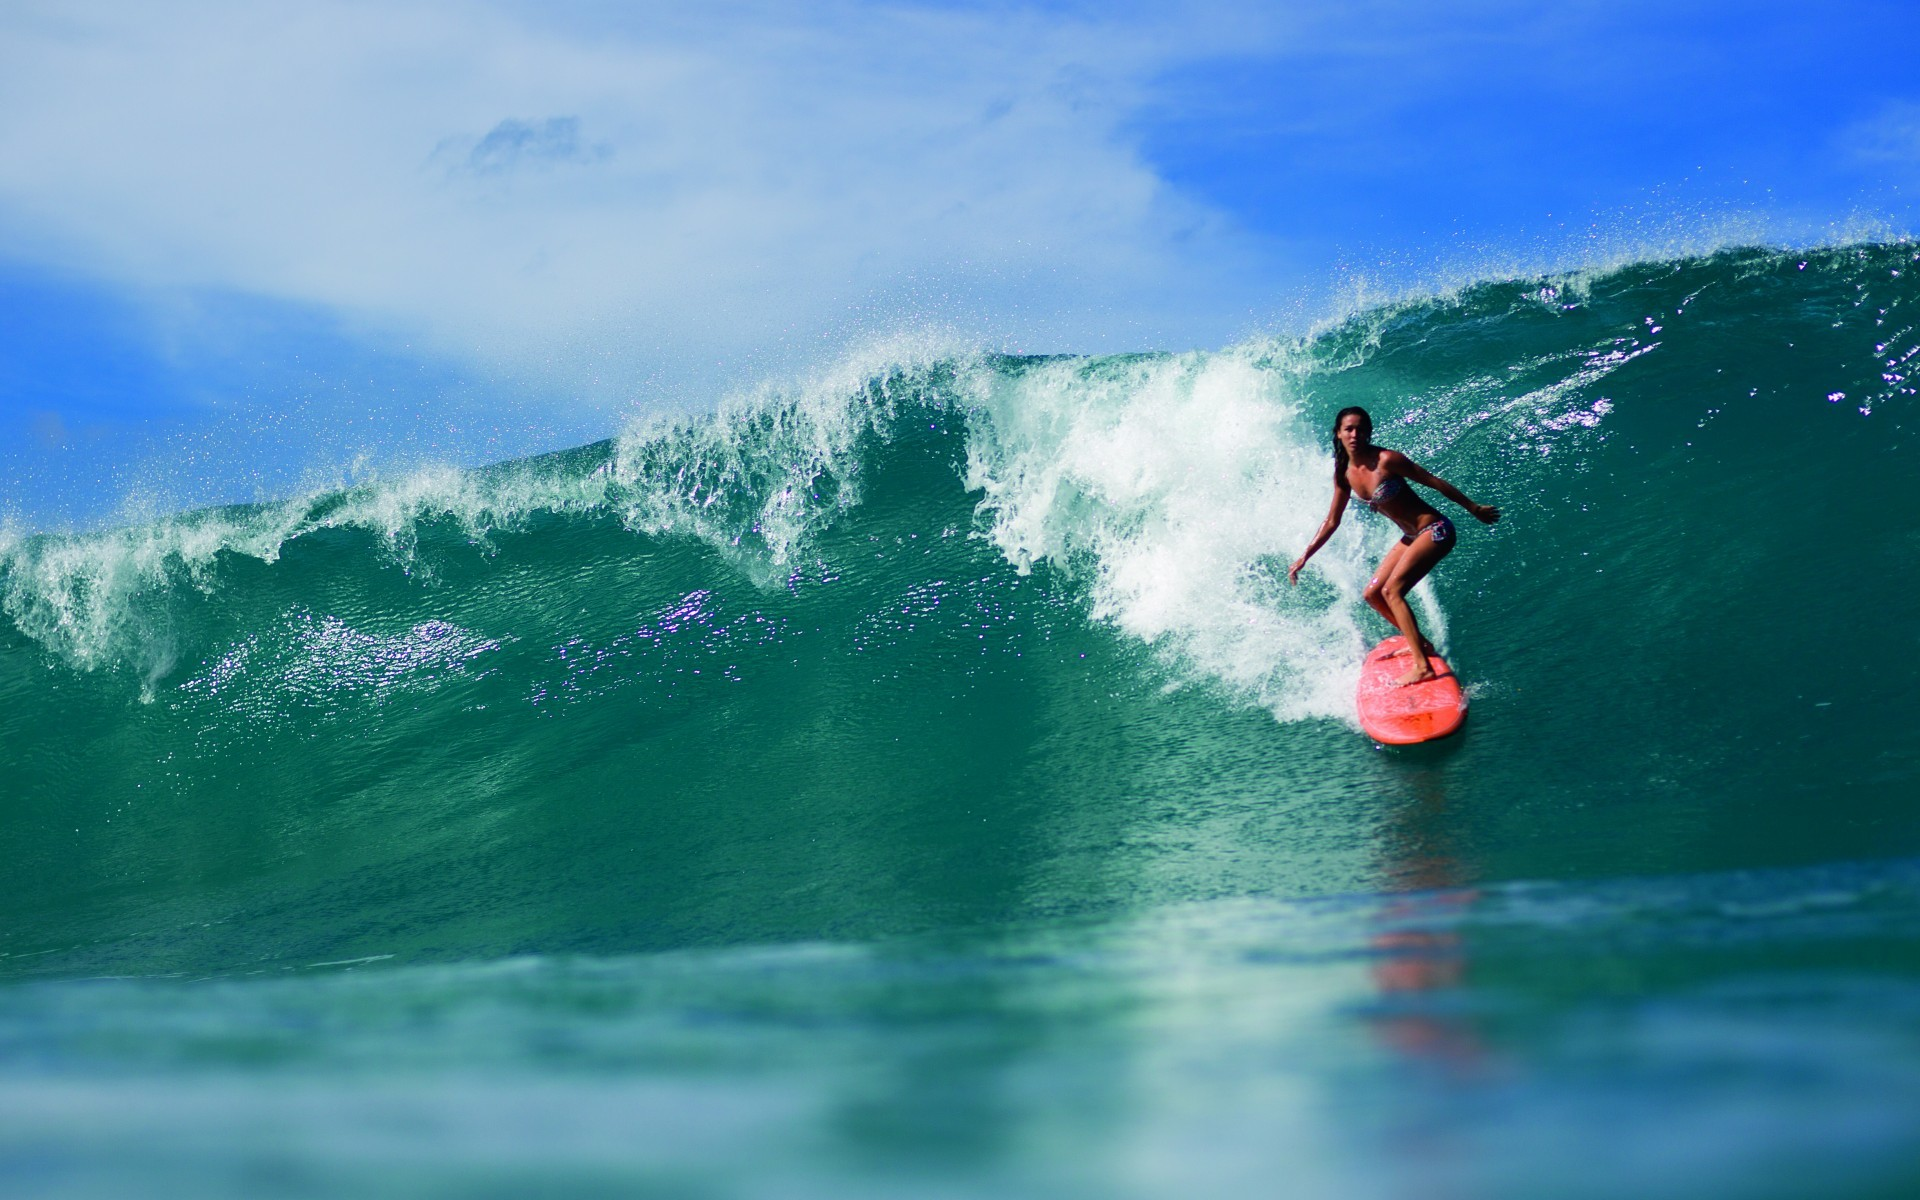 Wallpaper: Surfing Pic